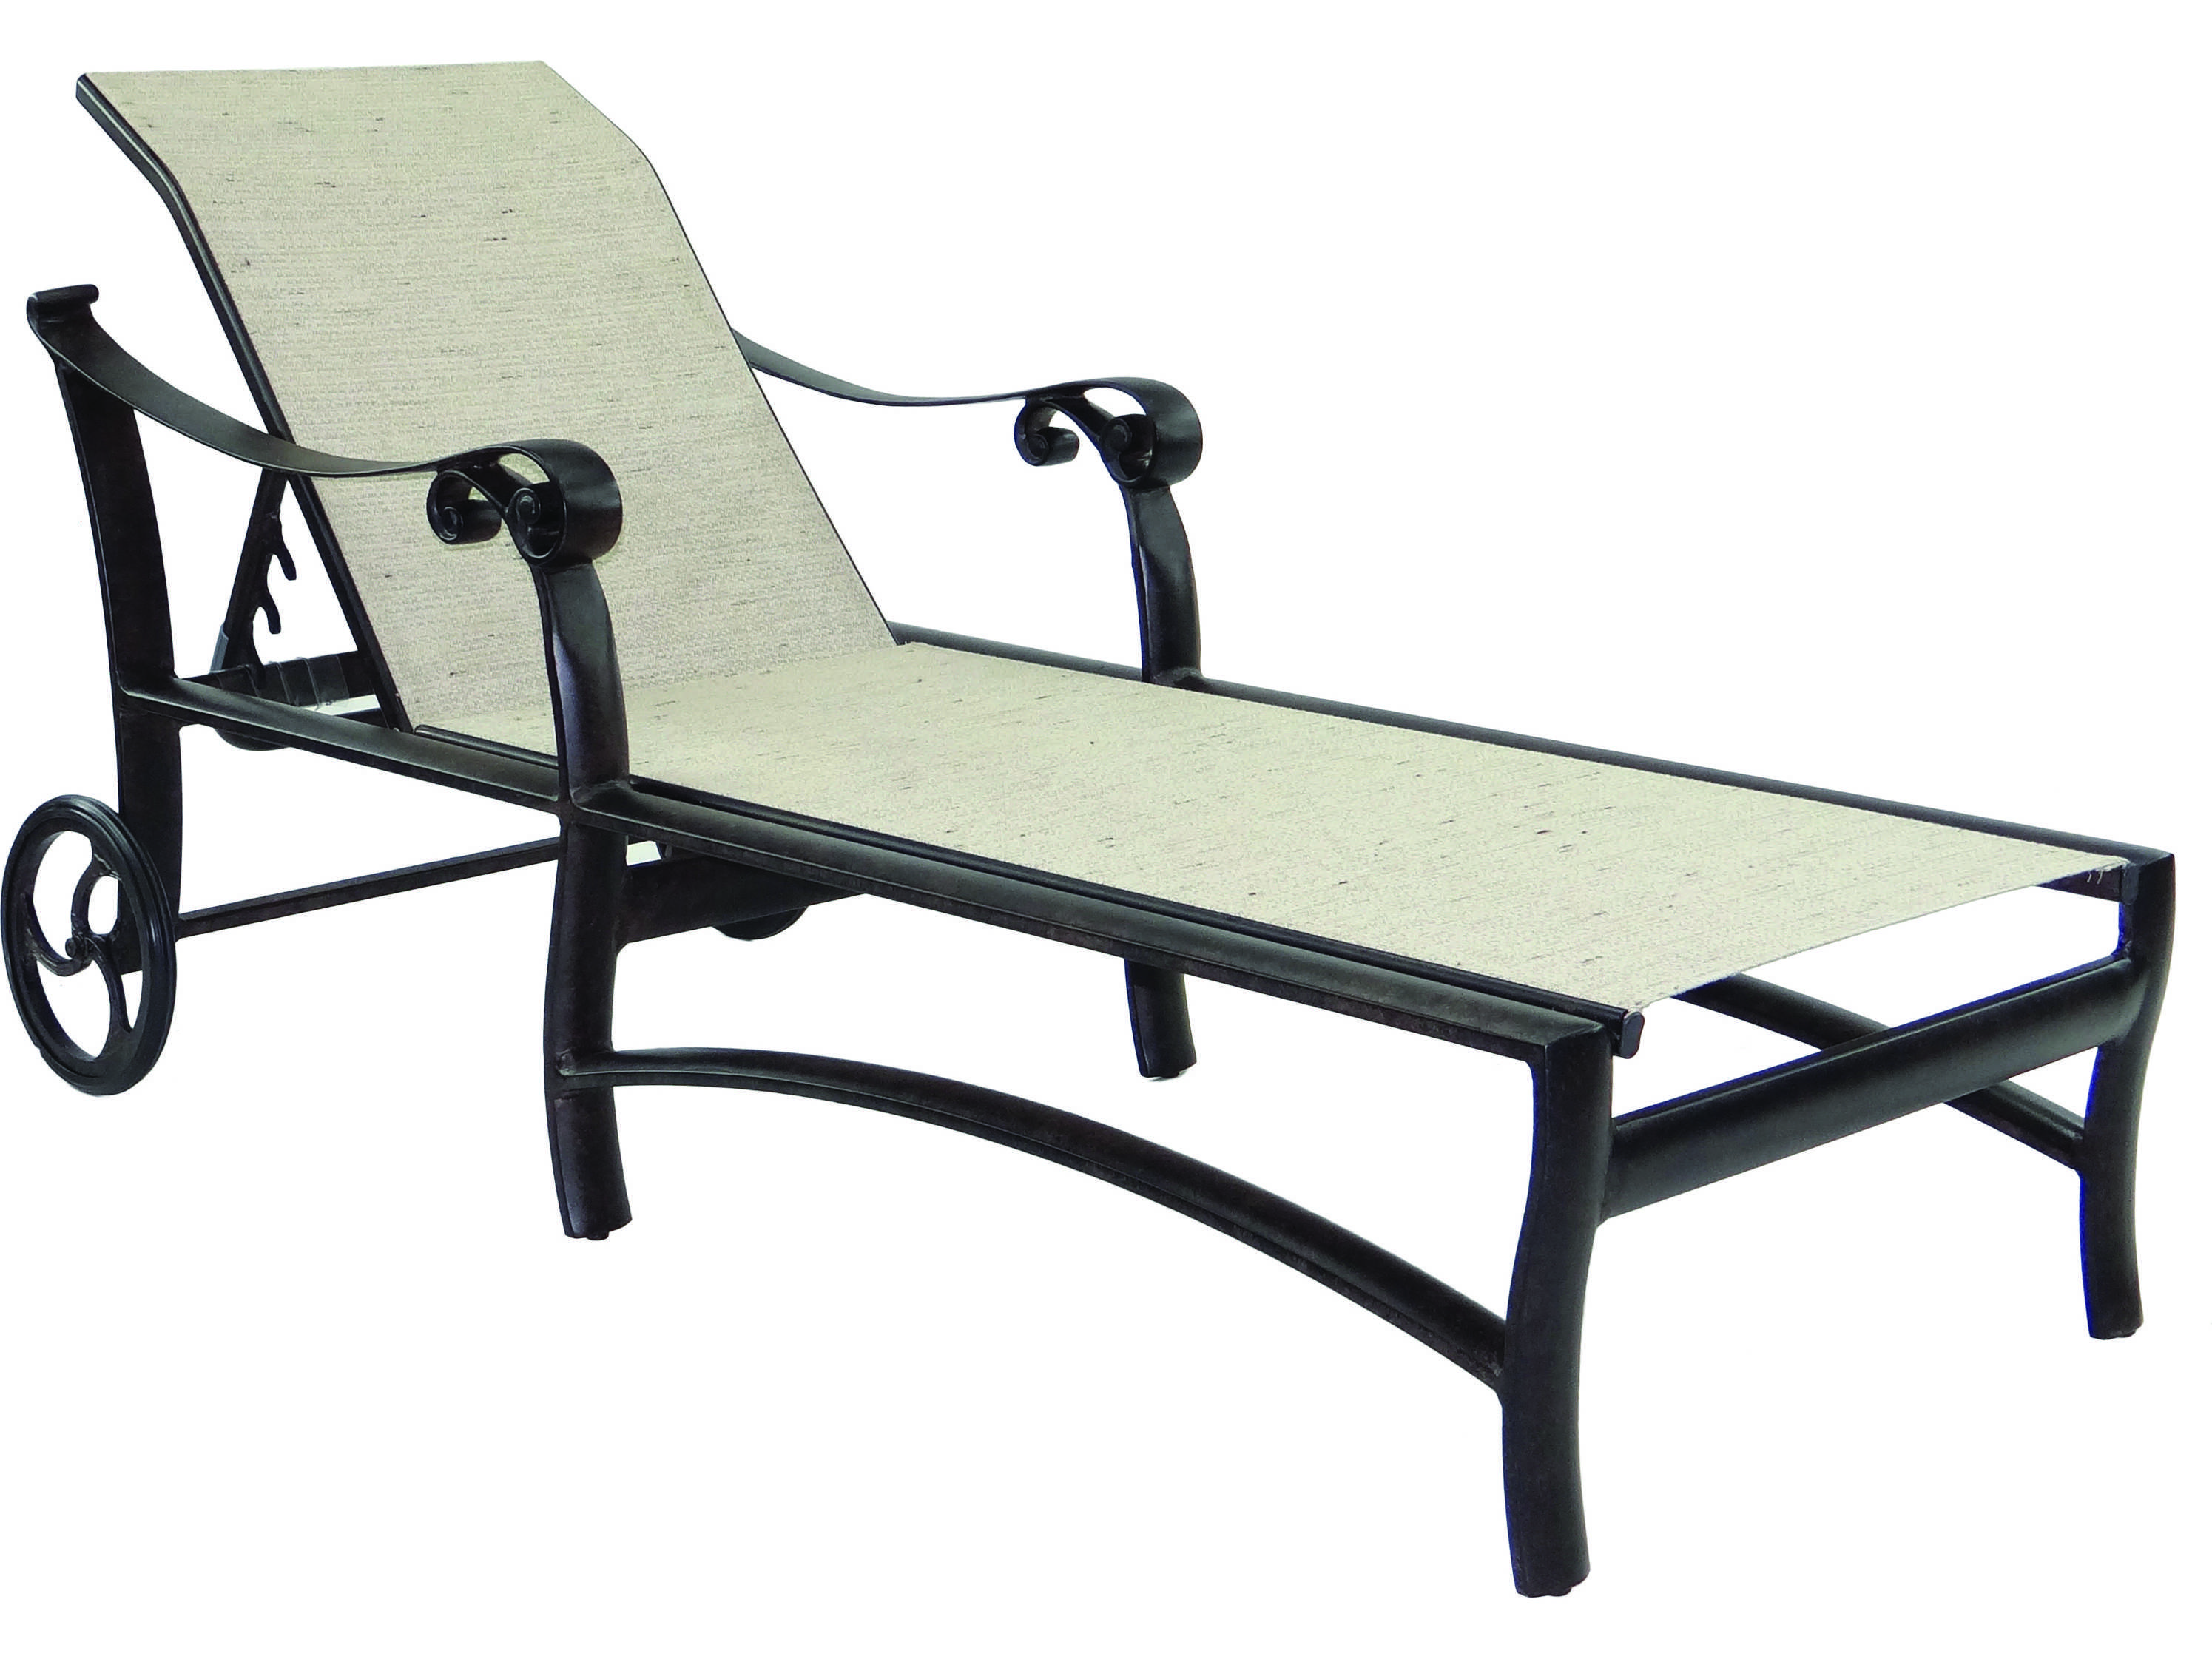 walmart sofa chaise chairs lounge table luxury favorite gardens inside outdoor double and beach indoors surprising better lounger avila homes lounges